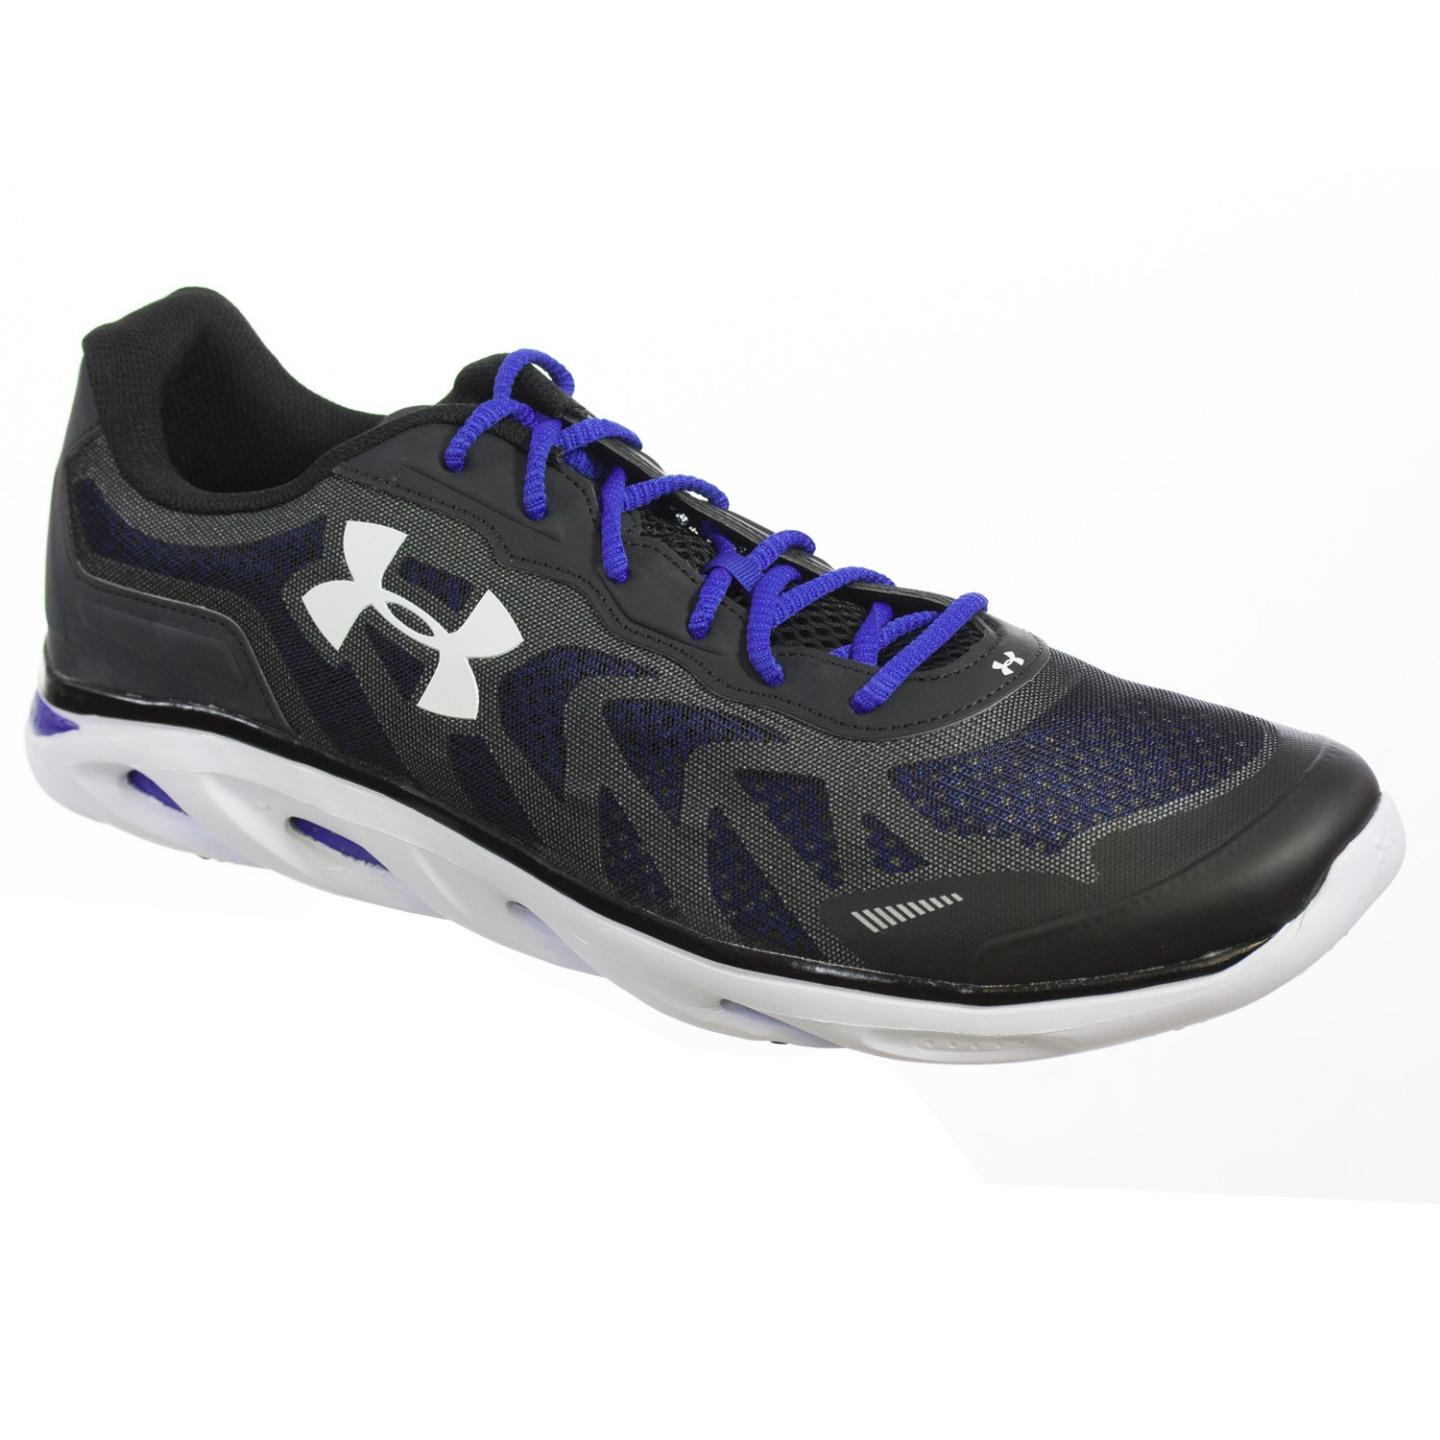 UNDER ARMOUR MENS ATHLETIC SHOES TEAM SPINE VENOM 2 BLACK WHITE MAROON 18 M